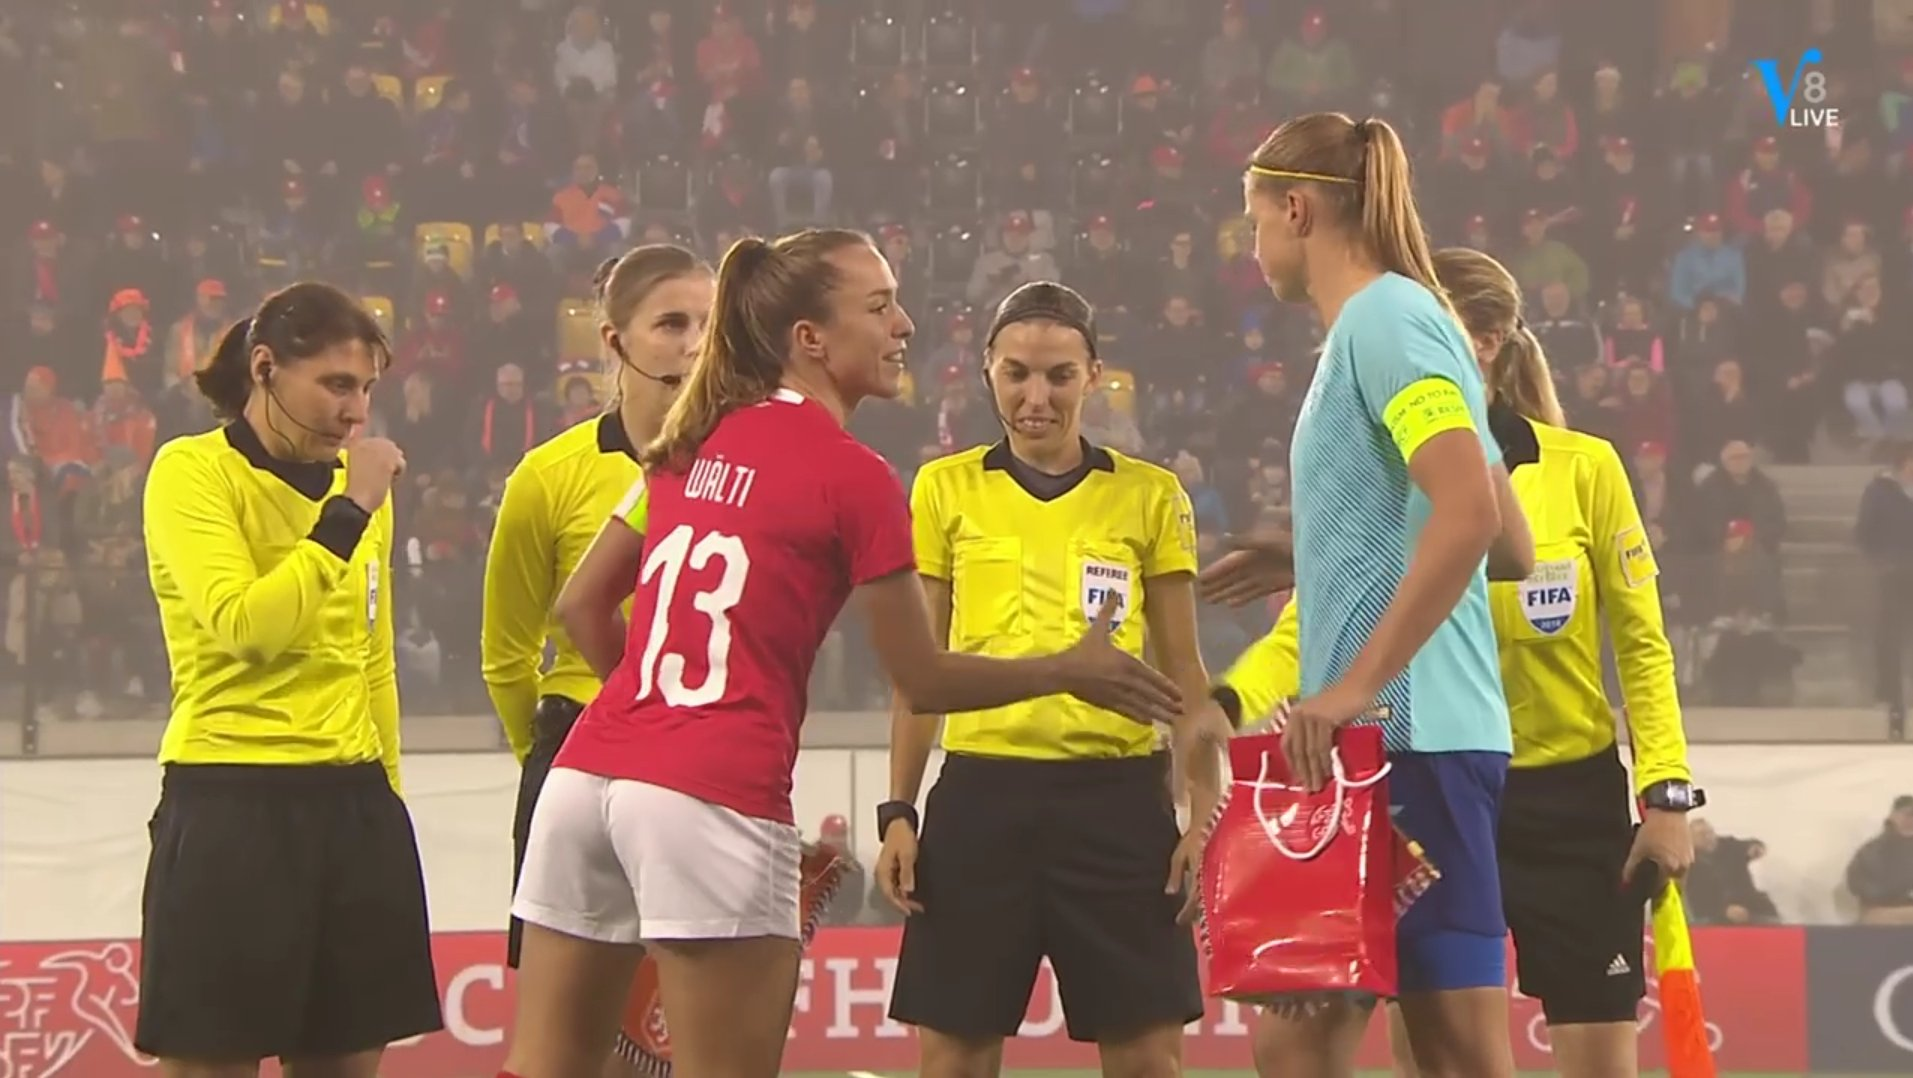 Stéphanie Frappart as referee